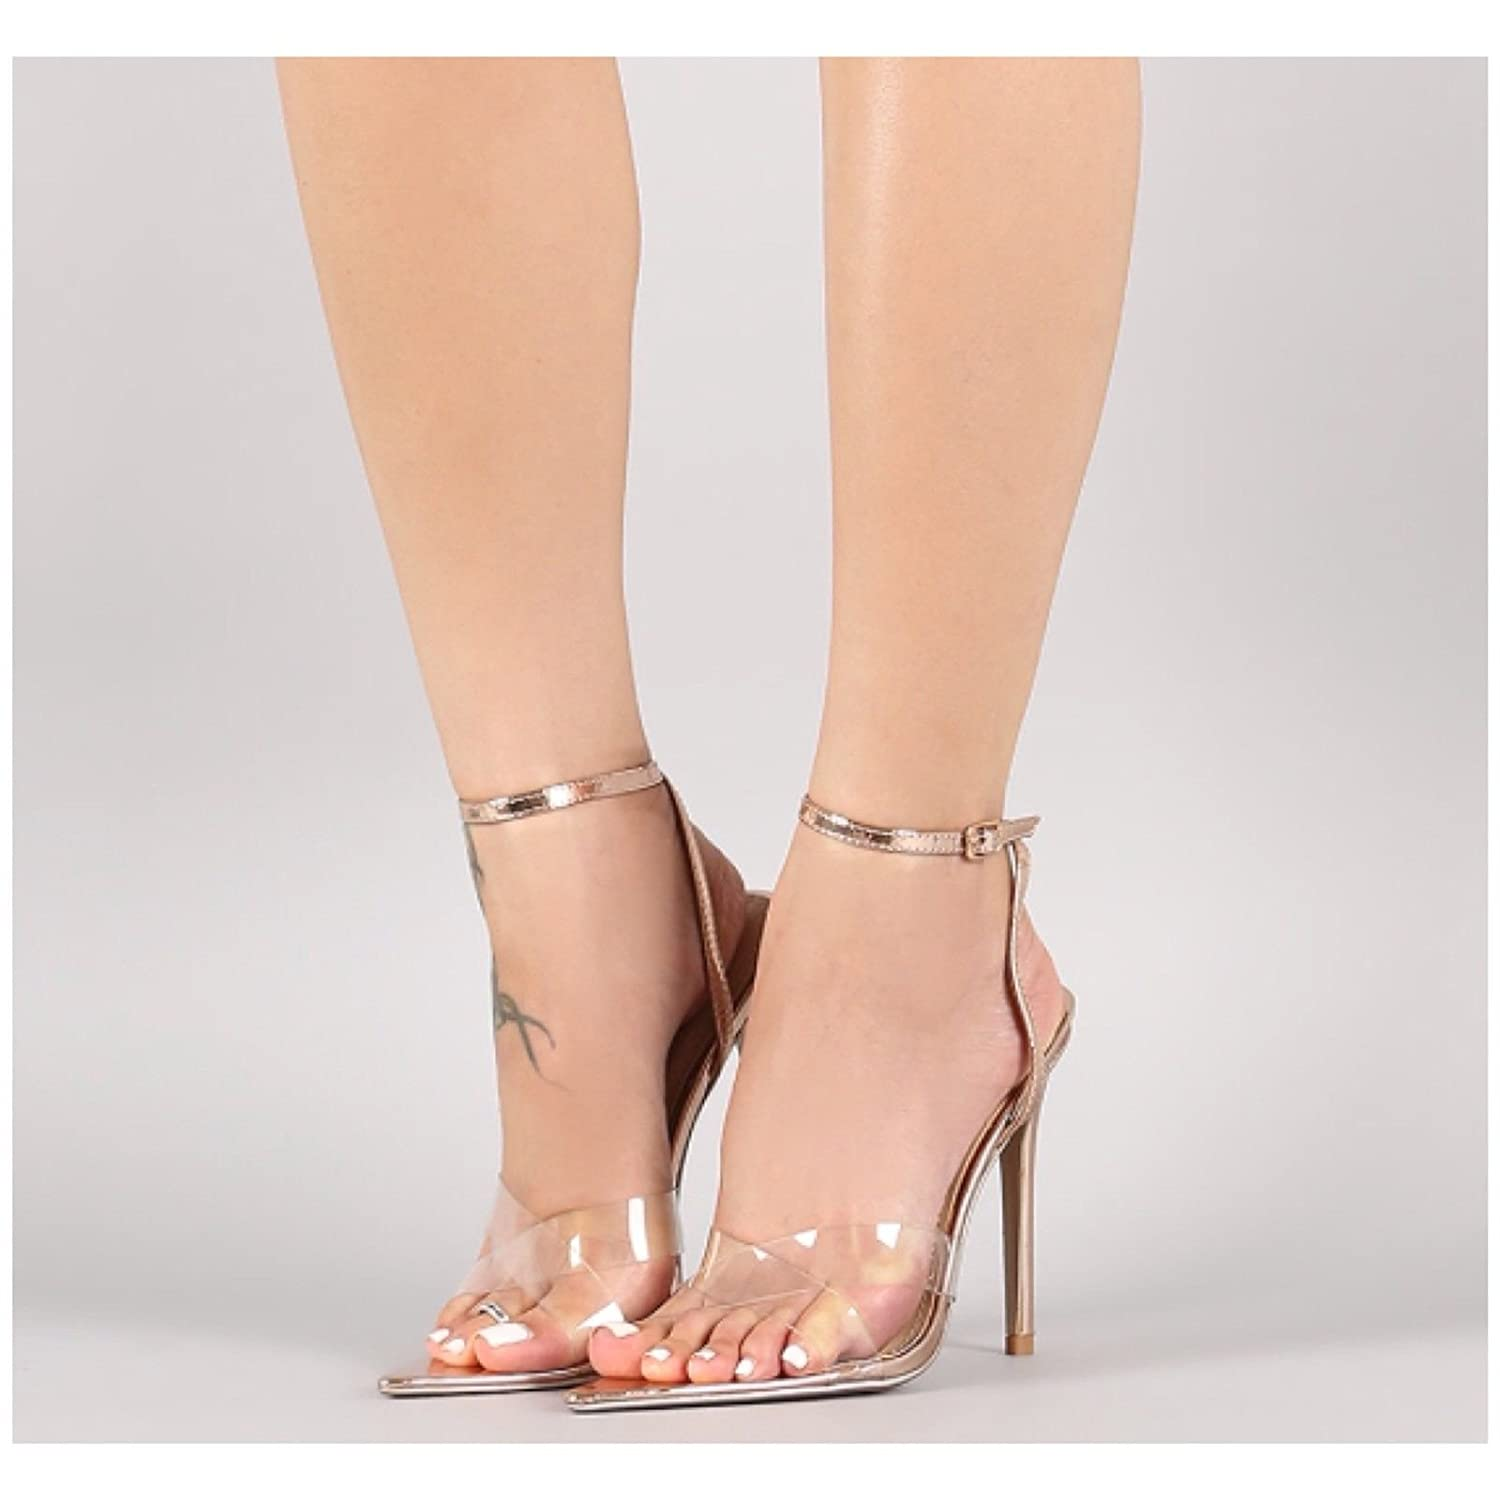 f3947968d91 Cape robbin women pointed toe transparent high heels clear dress sandals  ankle strappy bukle stilettos heeled